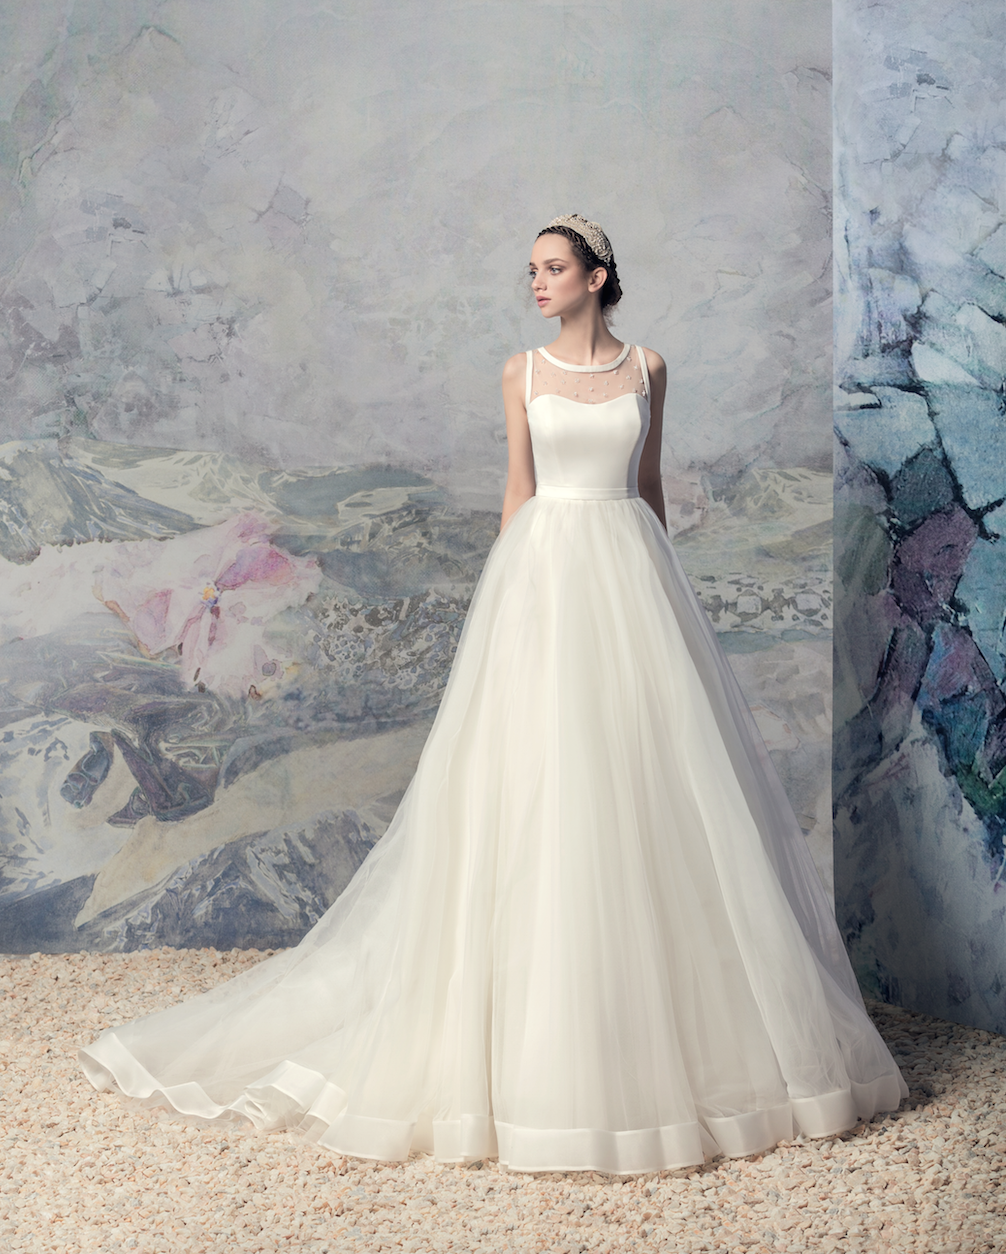 Design your own wedding dress near me  Selecting a wedding dress is more than just a fitting itus a memory